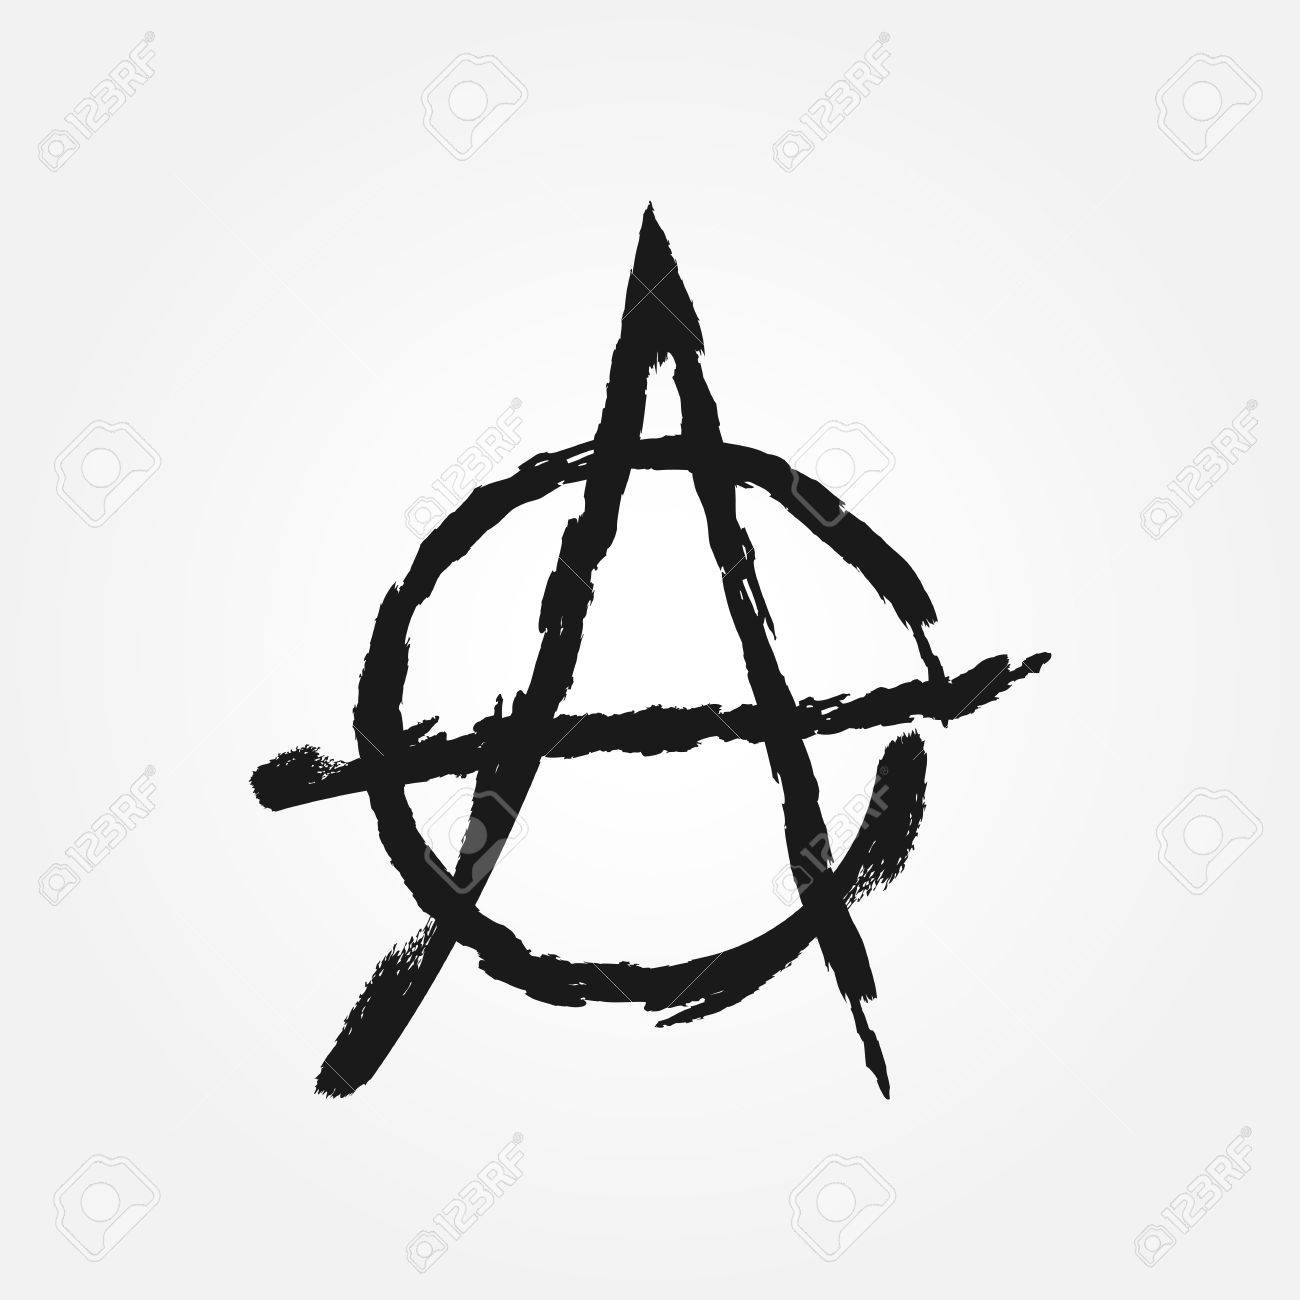 138 anarchism cliparts stock vector and royalty free anarchism sign anarchy the symbol of anarchism isolated element grunge biocorpaavc Choice Image